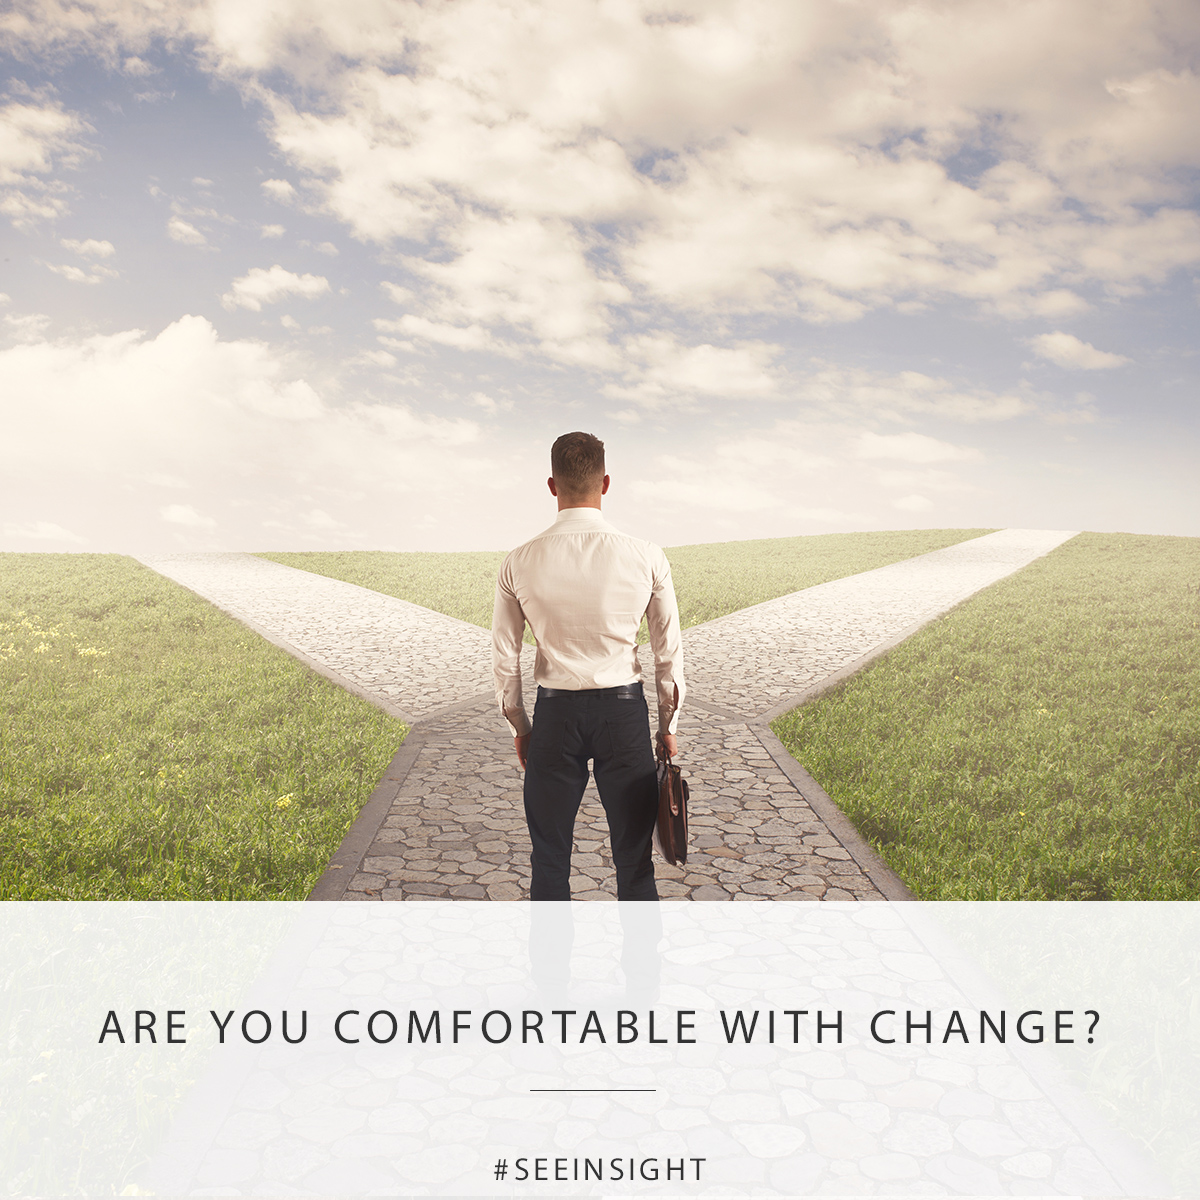 Are you comfortable with change